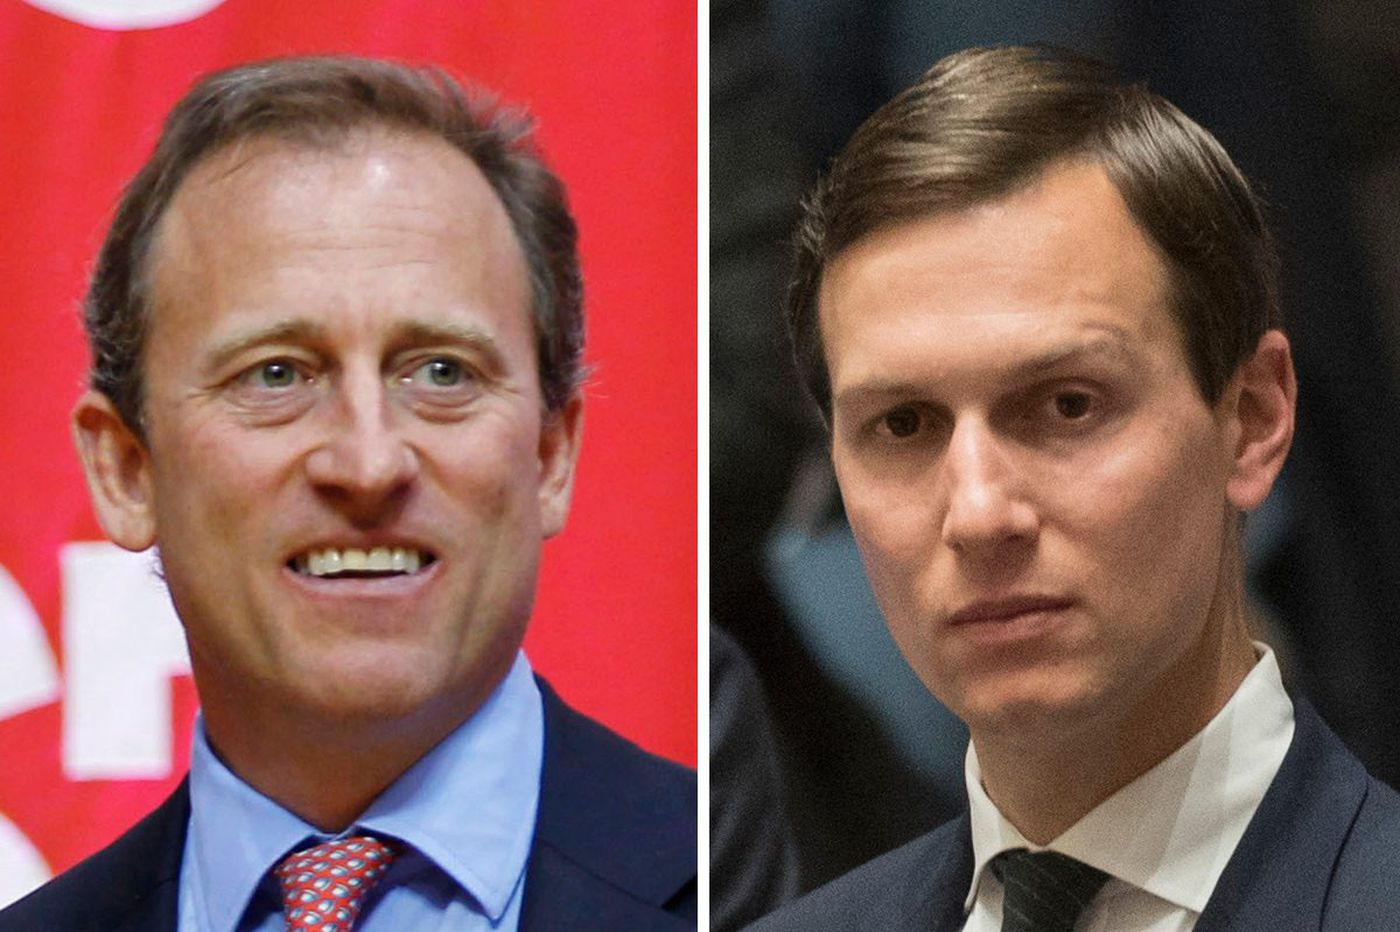 Latest White House drama involves Sixers owner Joshua Harris and Jared Kushner